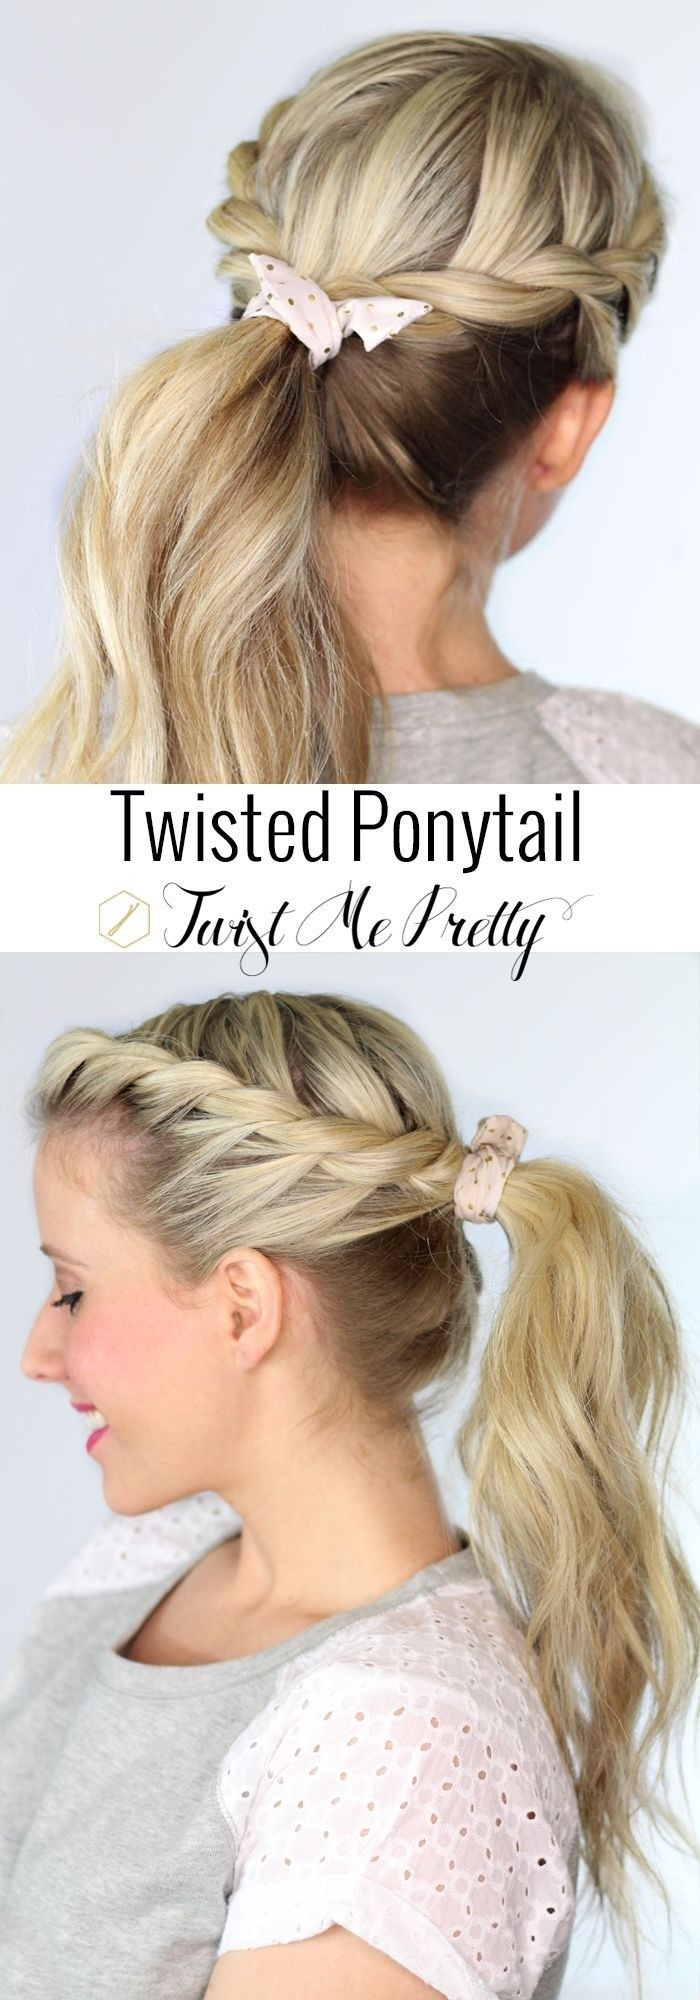 Twisted braid ponytail pictures photos and images for facebook